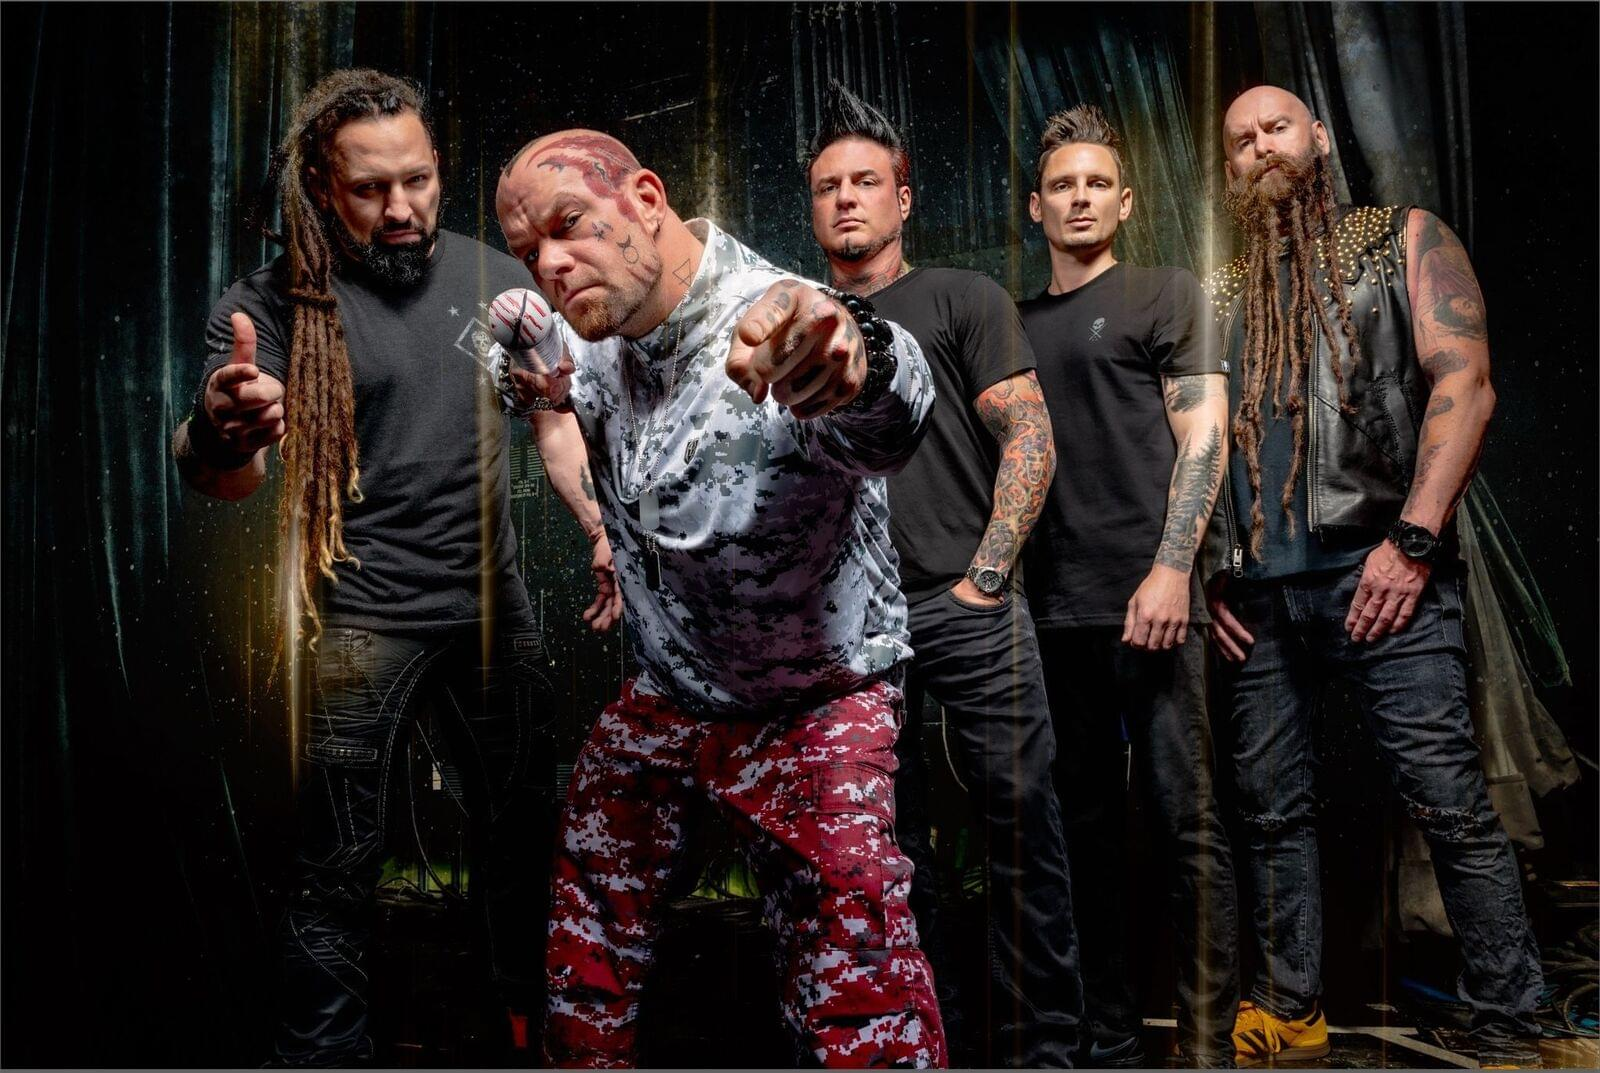 Five Finger Death Punch Guitarist Out For The Rest Of Their Tour